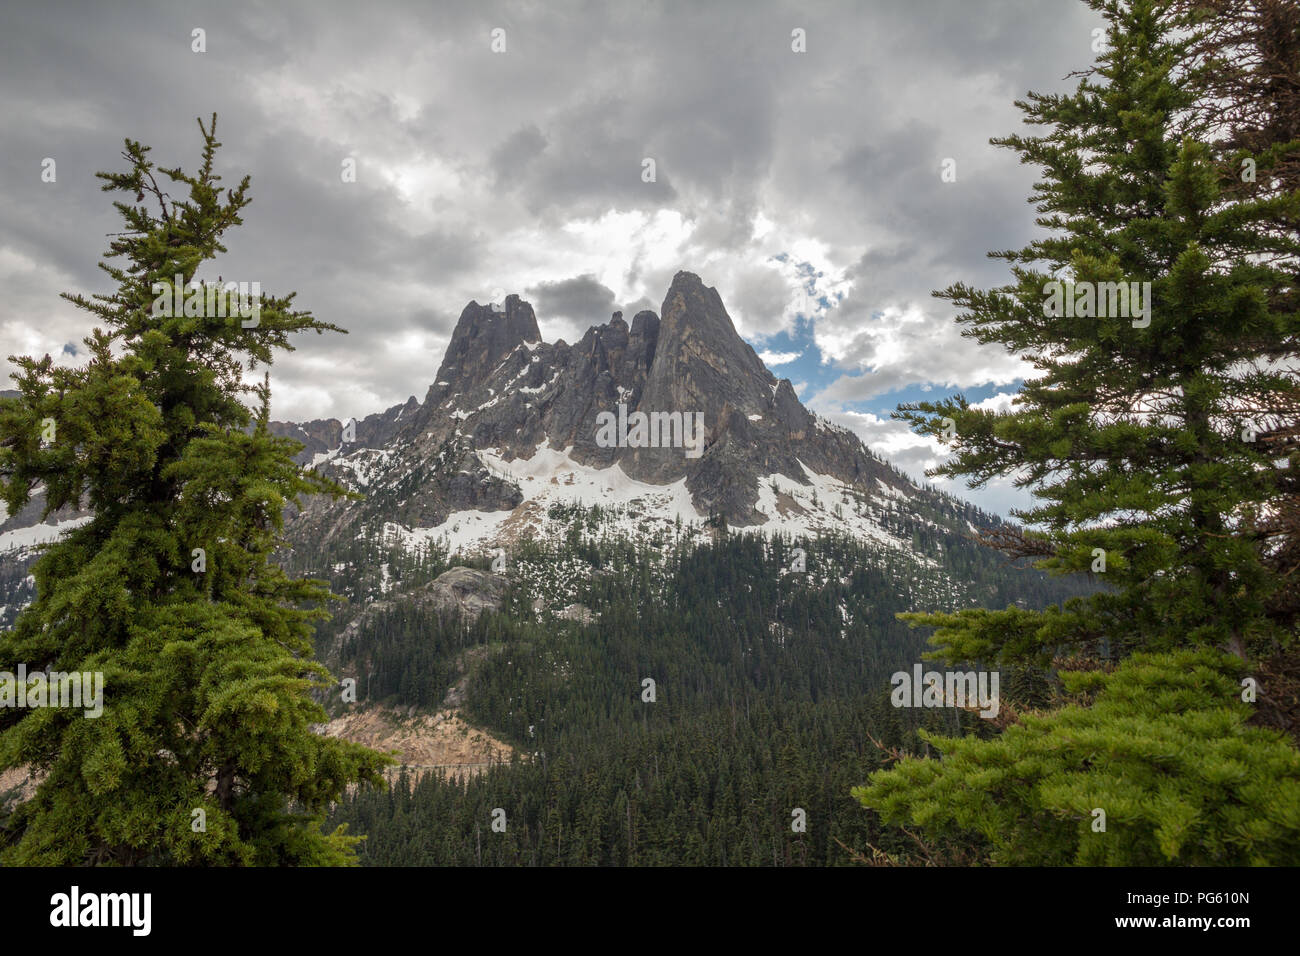 The Early Winters Spires in Washington's North Cascades - framed by conifer trees - in late spring with snow still clinging to the higher slopes - Stock Image